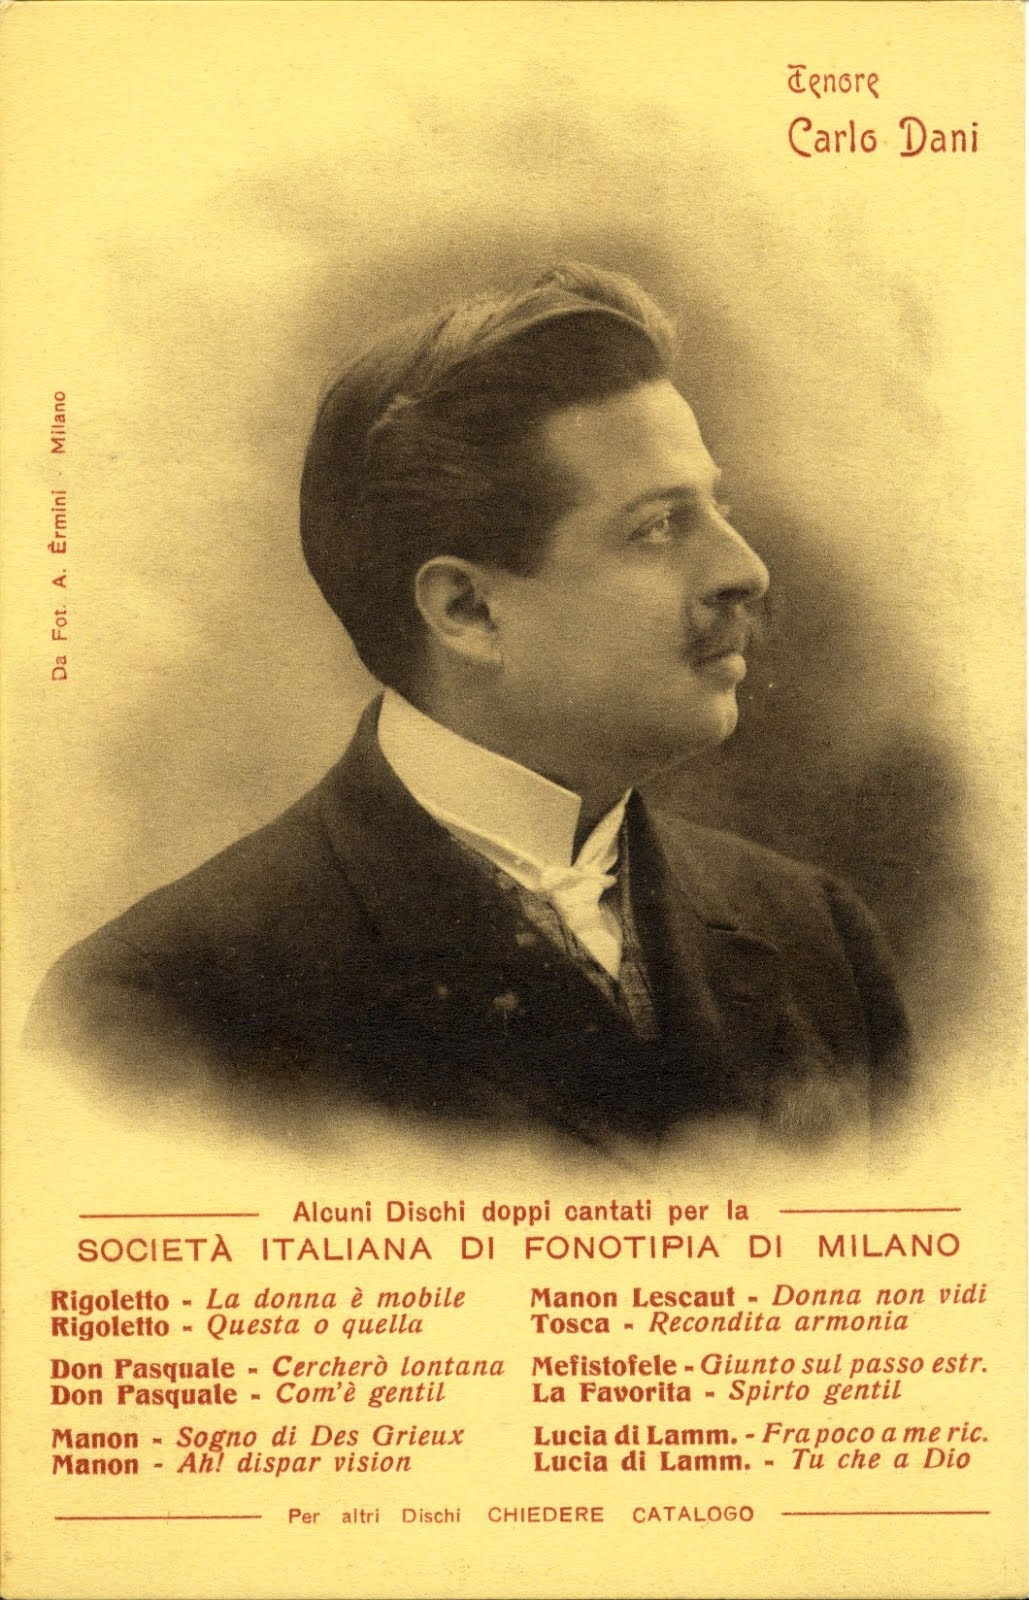 GREAT ITALIAN TENOR CARLO DANI (1873-1944) CD